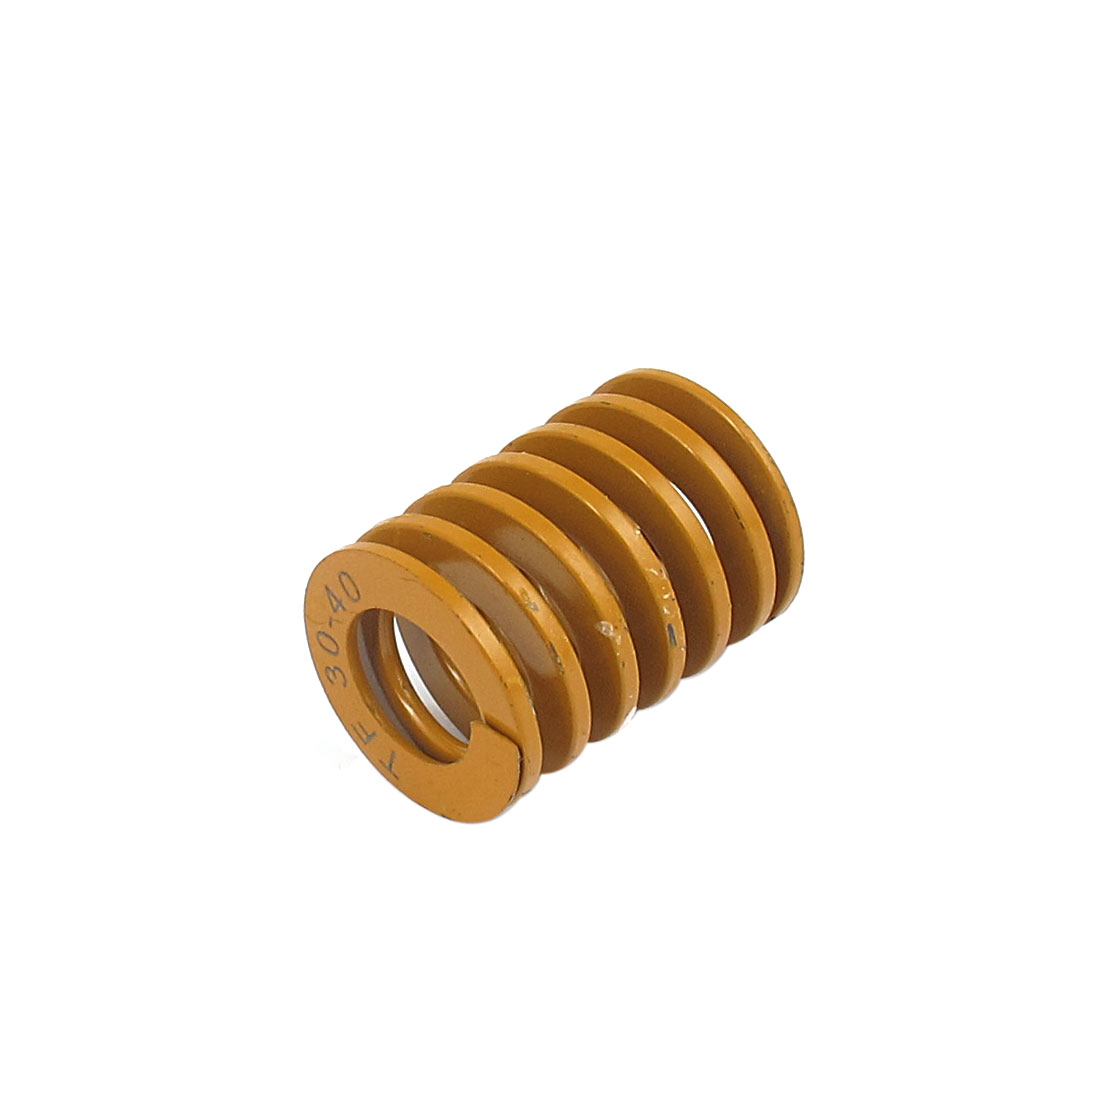 30mmx40mm Chromium Alloy Steel Lightest Load Die Spring Yellow